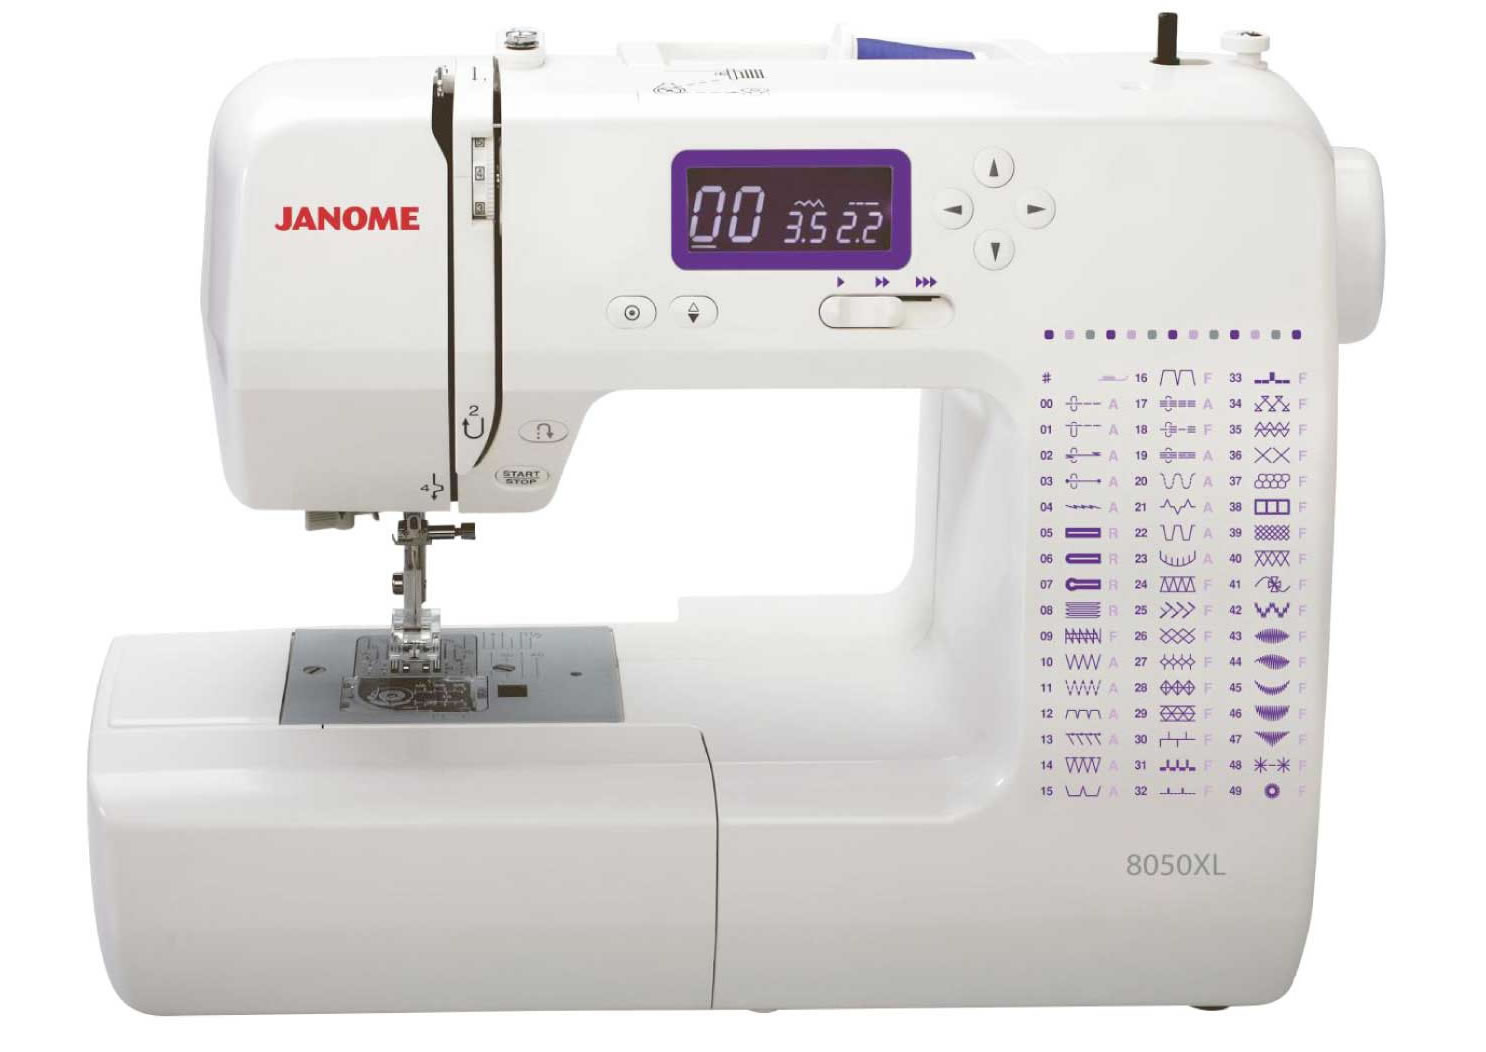 Janome America: World s Easiest Sewing, Quilting, Embroidery